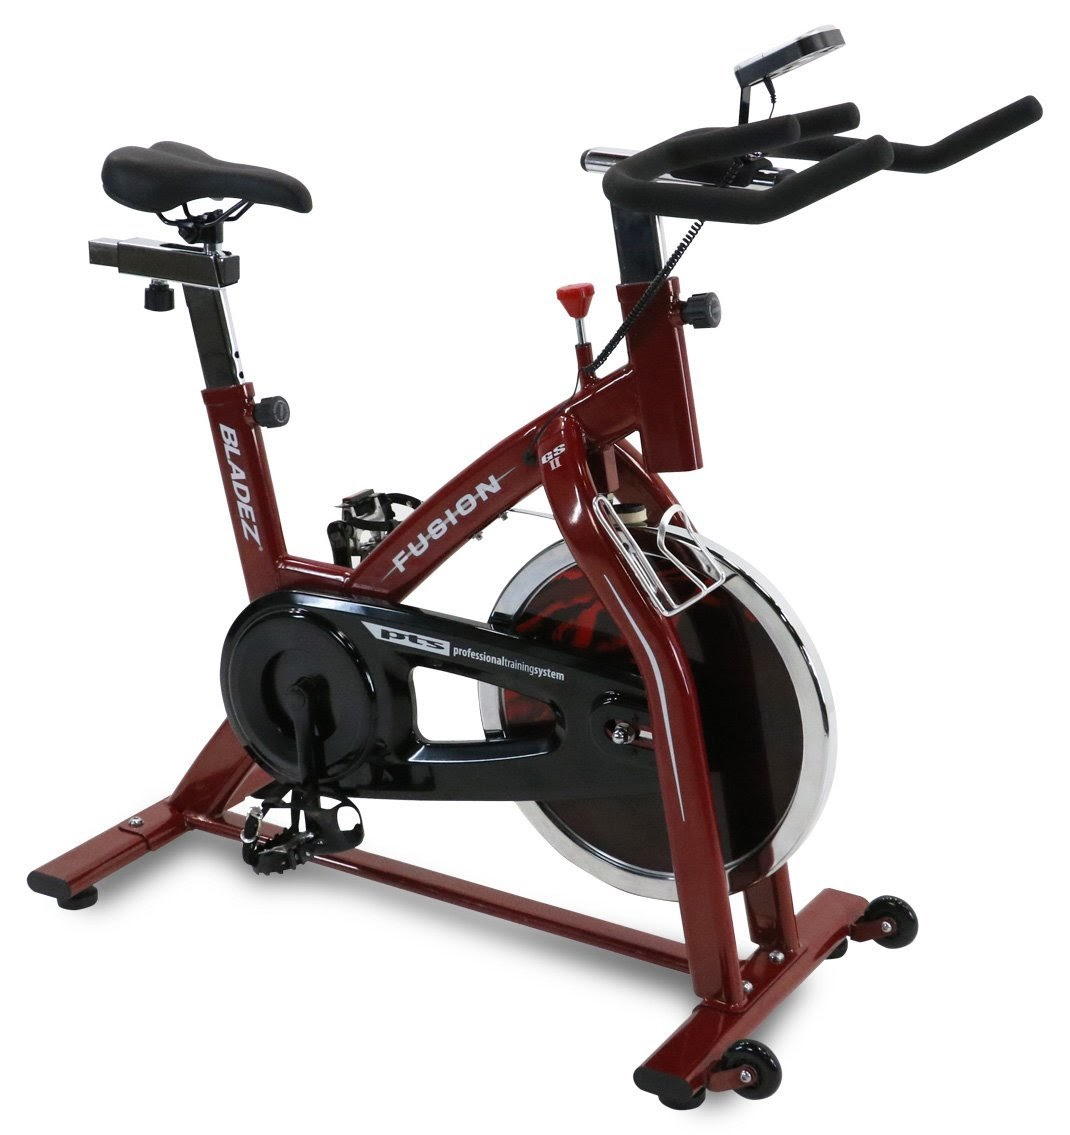 Stamina magnetic upright 5325 exercise bike - Bladez Fitness Fusion Gs Ii Indoor Cycle Spin Bike With 40 Lb Flywheel Chain